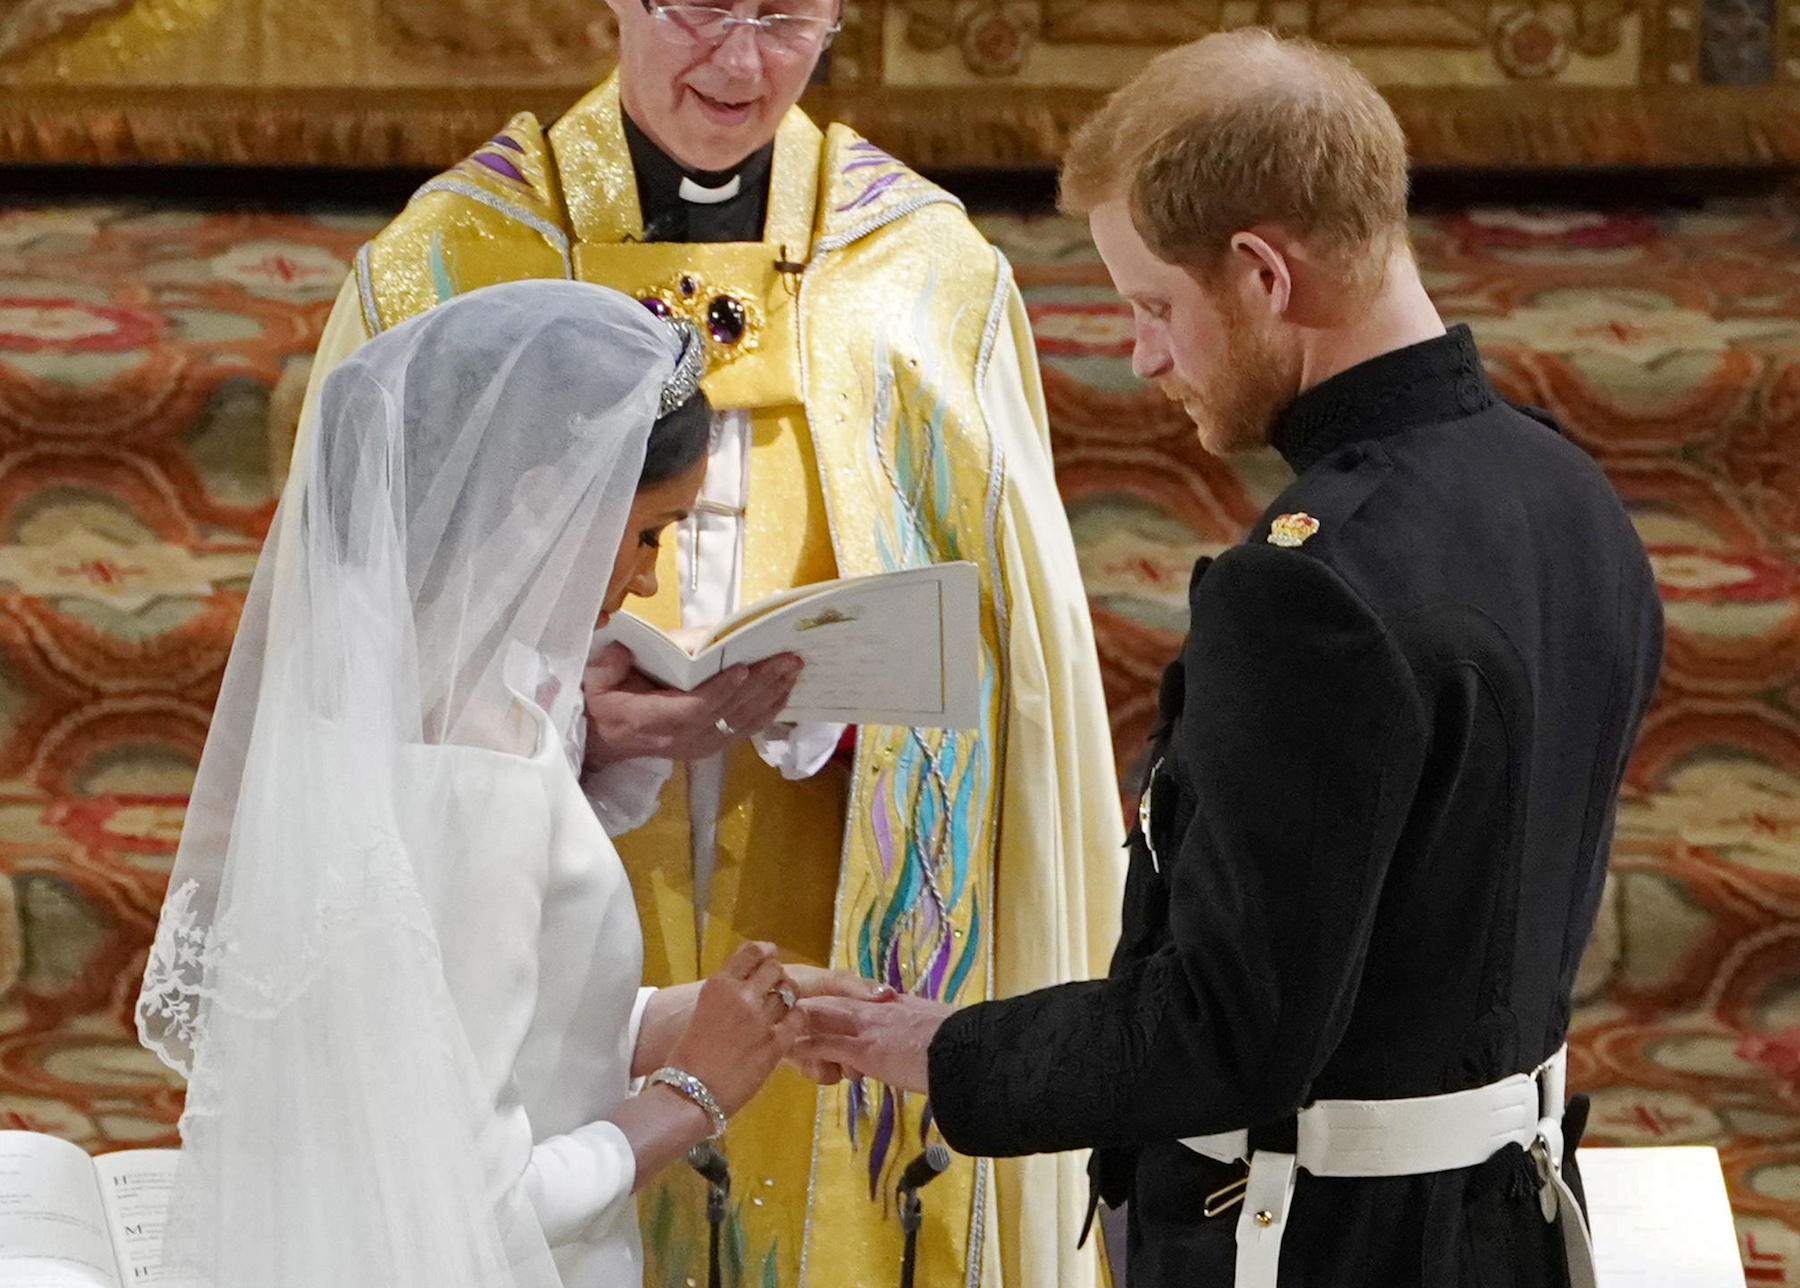 "<div class=""meta image-caption""><div class=""origin-logo origin-image kgo""><span>kgo</span></div><span class=""caption-text"">US fiancee of Britain's Prince Harry Meghan Markle and Britain's Prince Harry, Duke of Sussex exchange rings during their wedding ceremony in St George's Chapel. (Owen Humphrey/AFP/Getty Images)</span></div>"